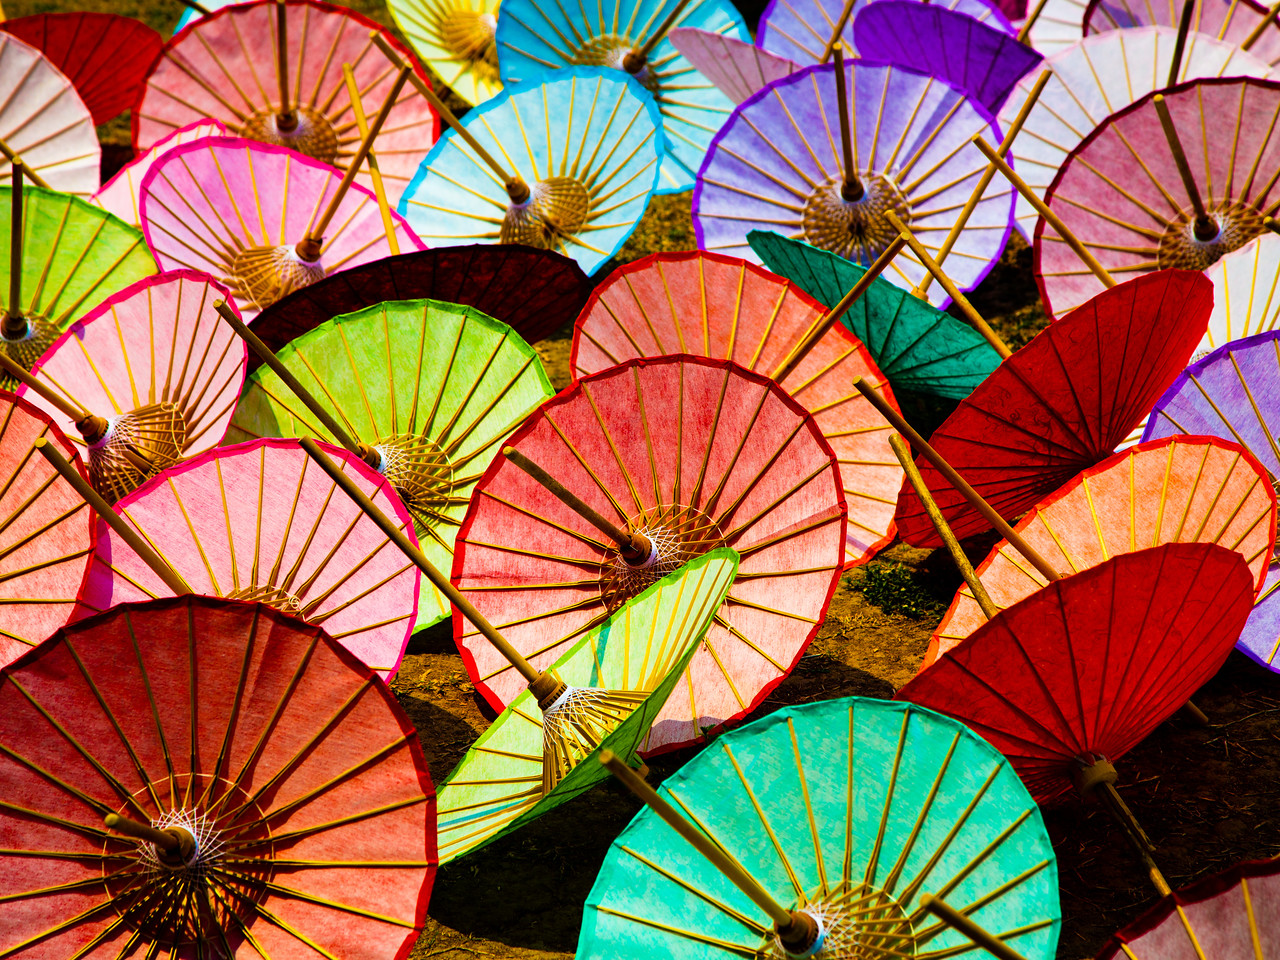 Painted Umbrellas Drying in a Filed near the Umbrella Factory